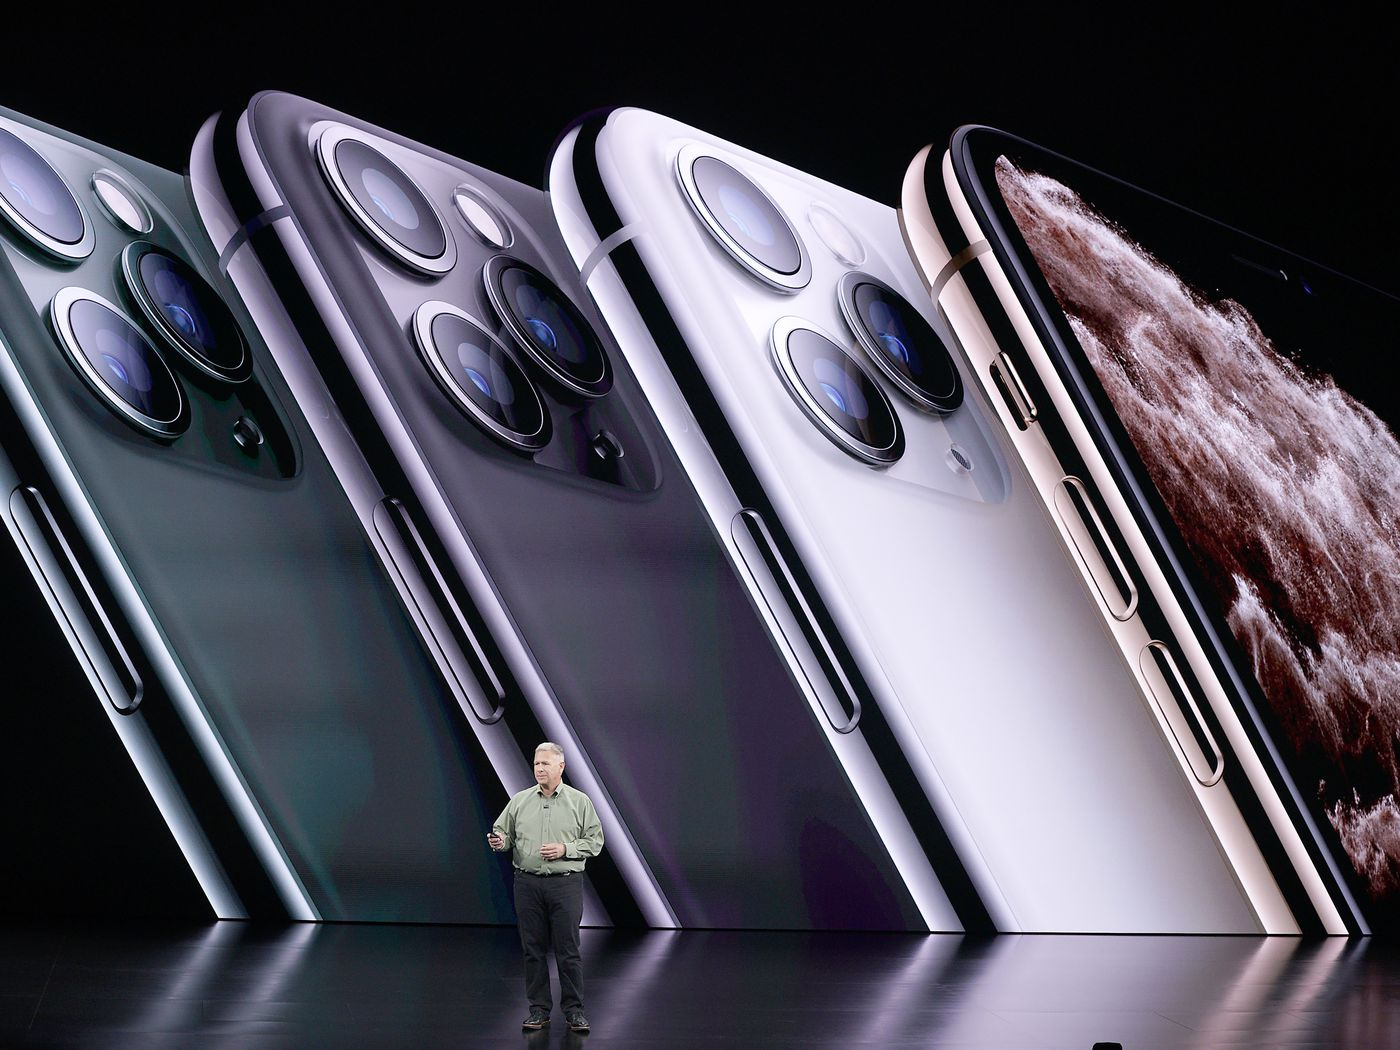 When Will Iphone 12 Come Out Apple S Production Delayed Due To Covid 19 Deseret News